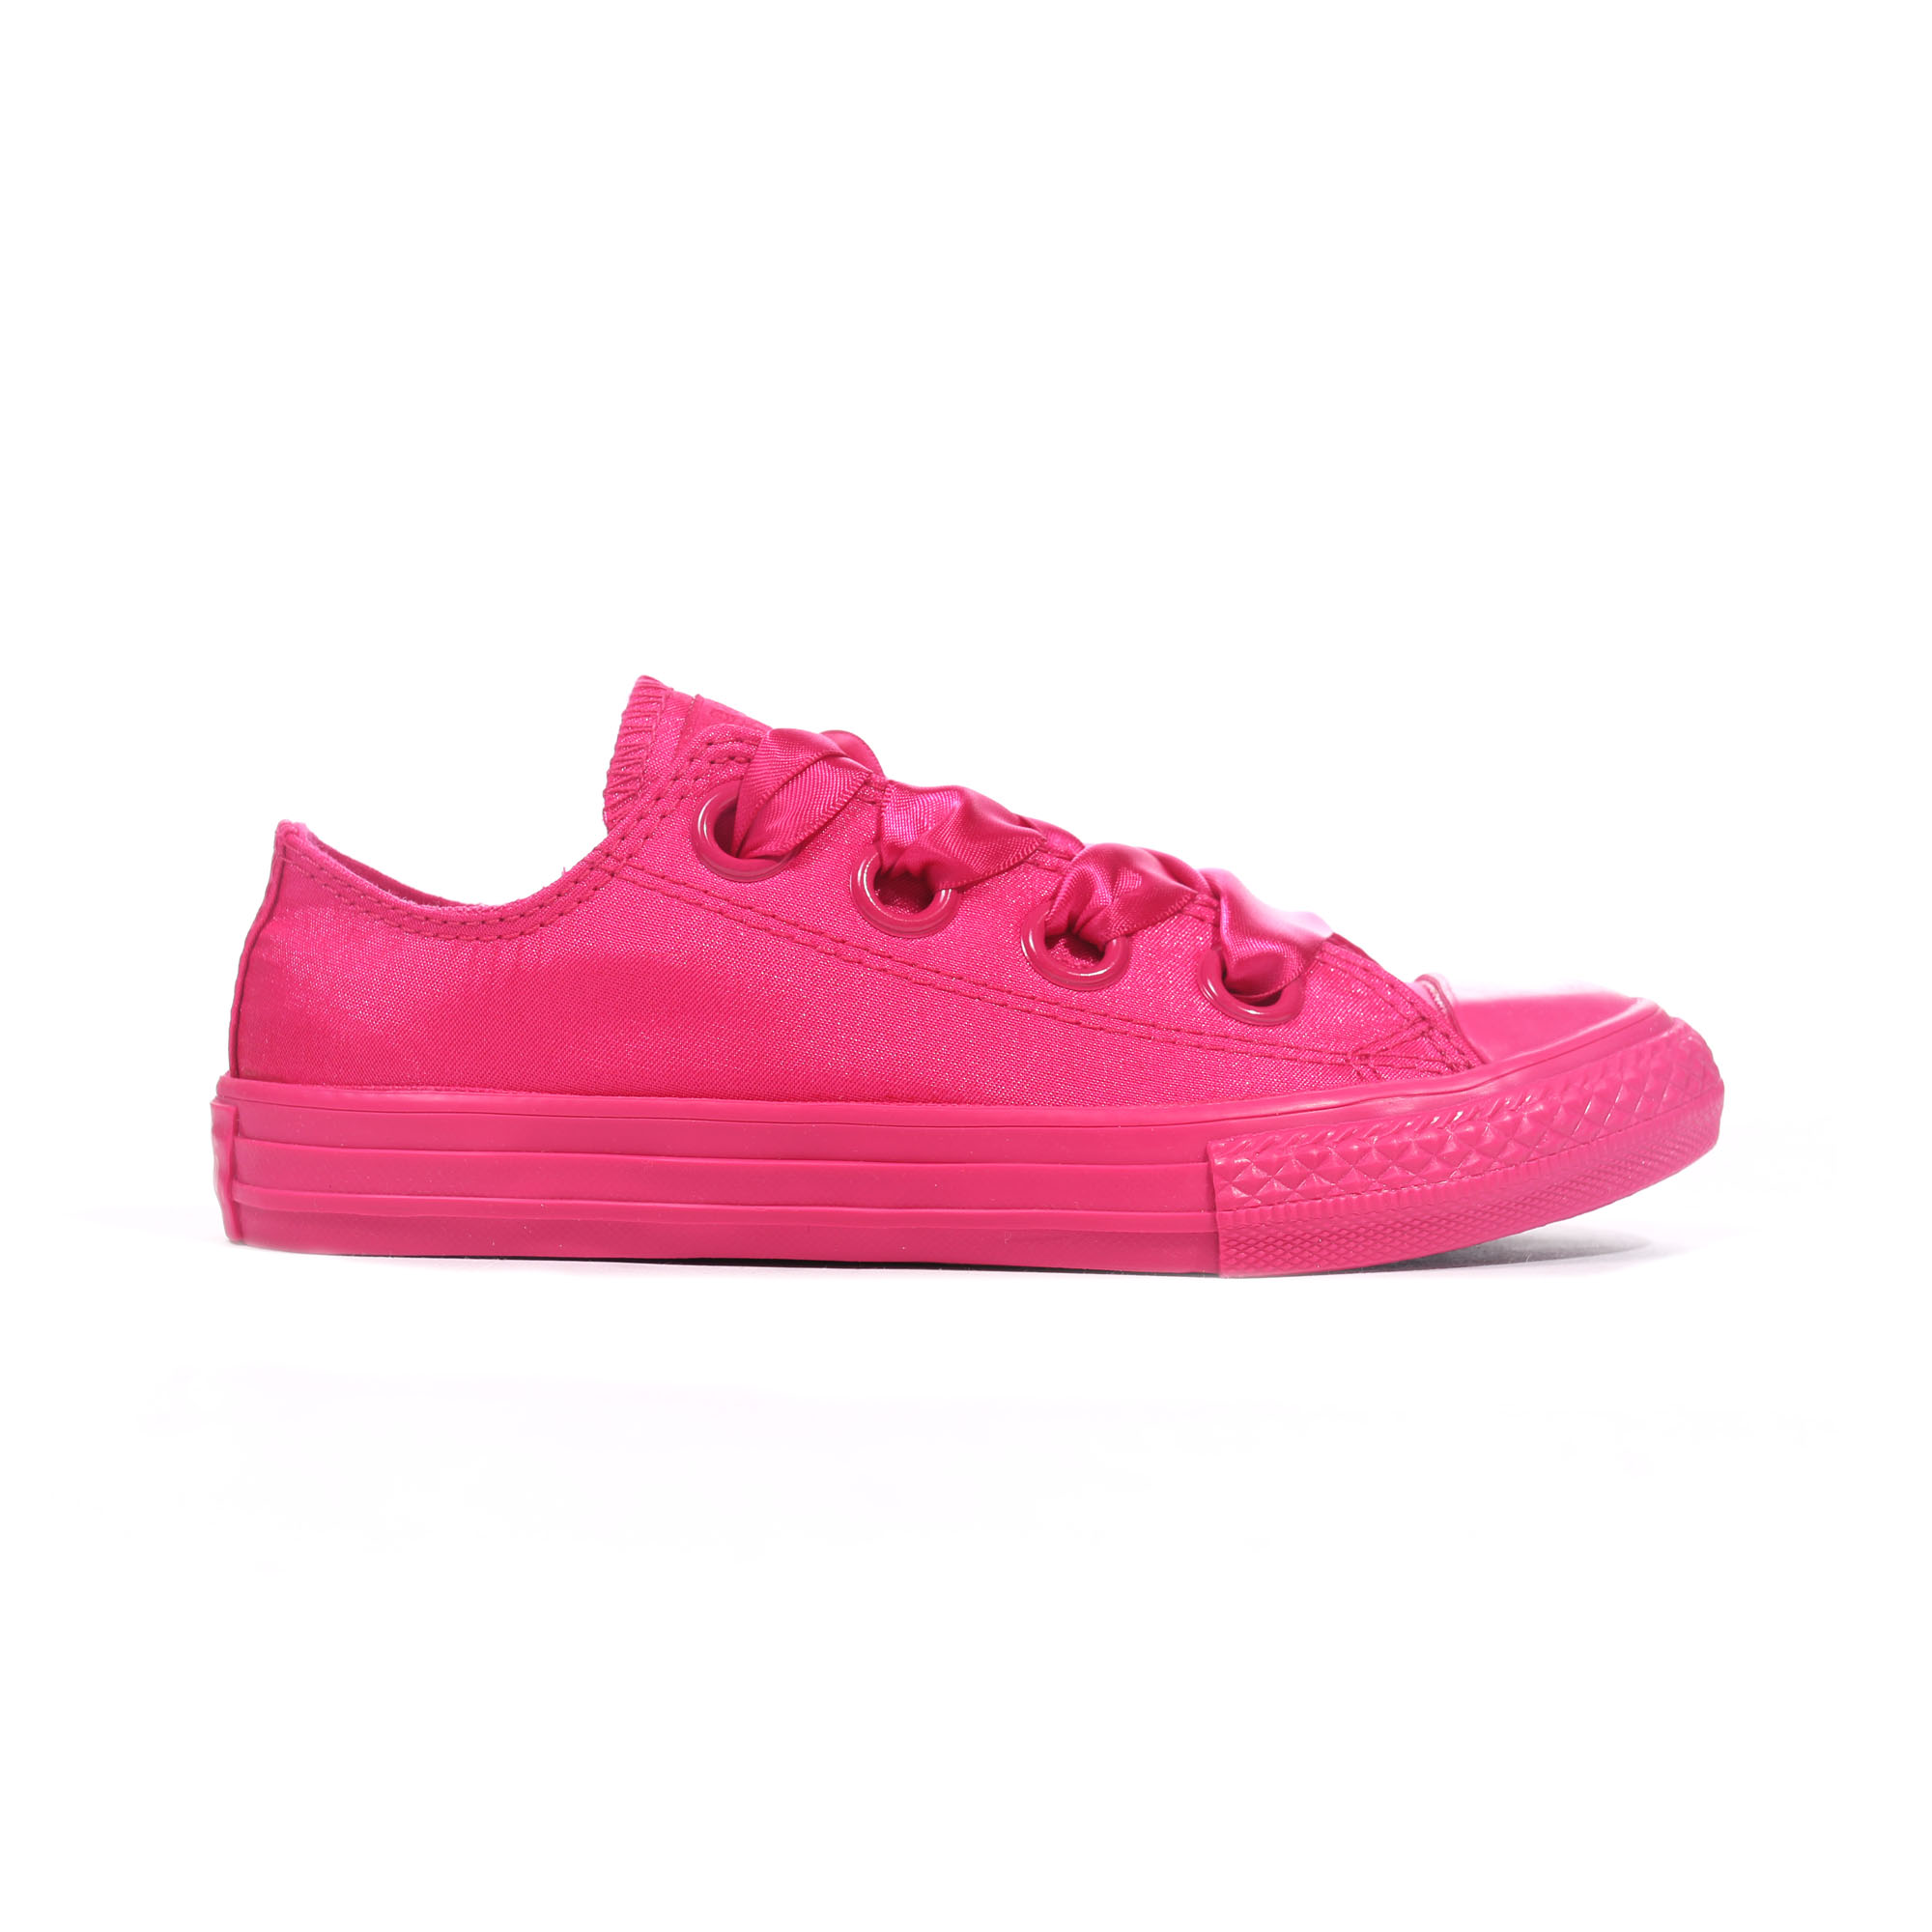 c9ce1d8b5929 Details about Converse Chuck Taylor All Star Big Eyelets Ox Junior Trainer  Pink Pop